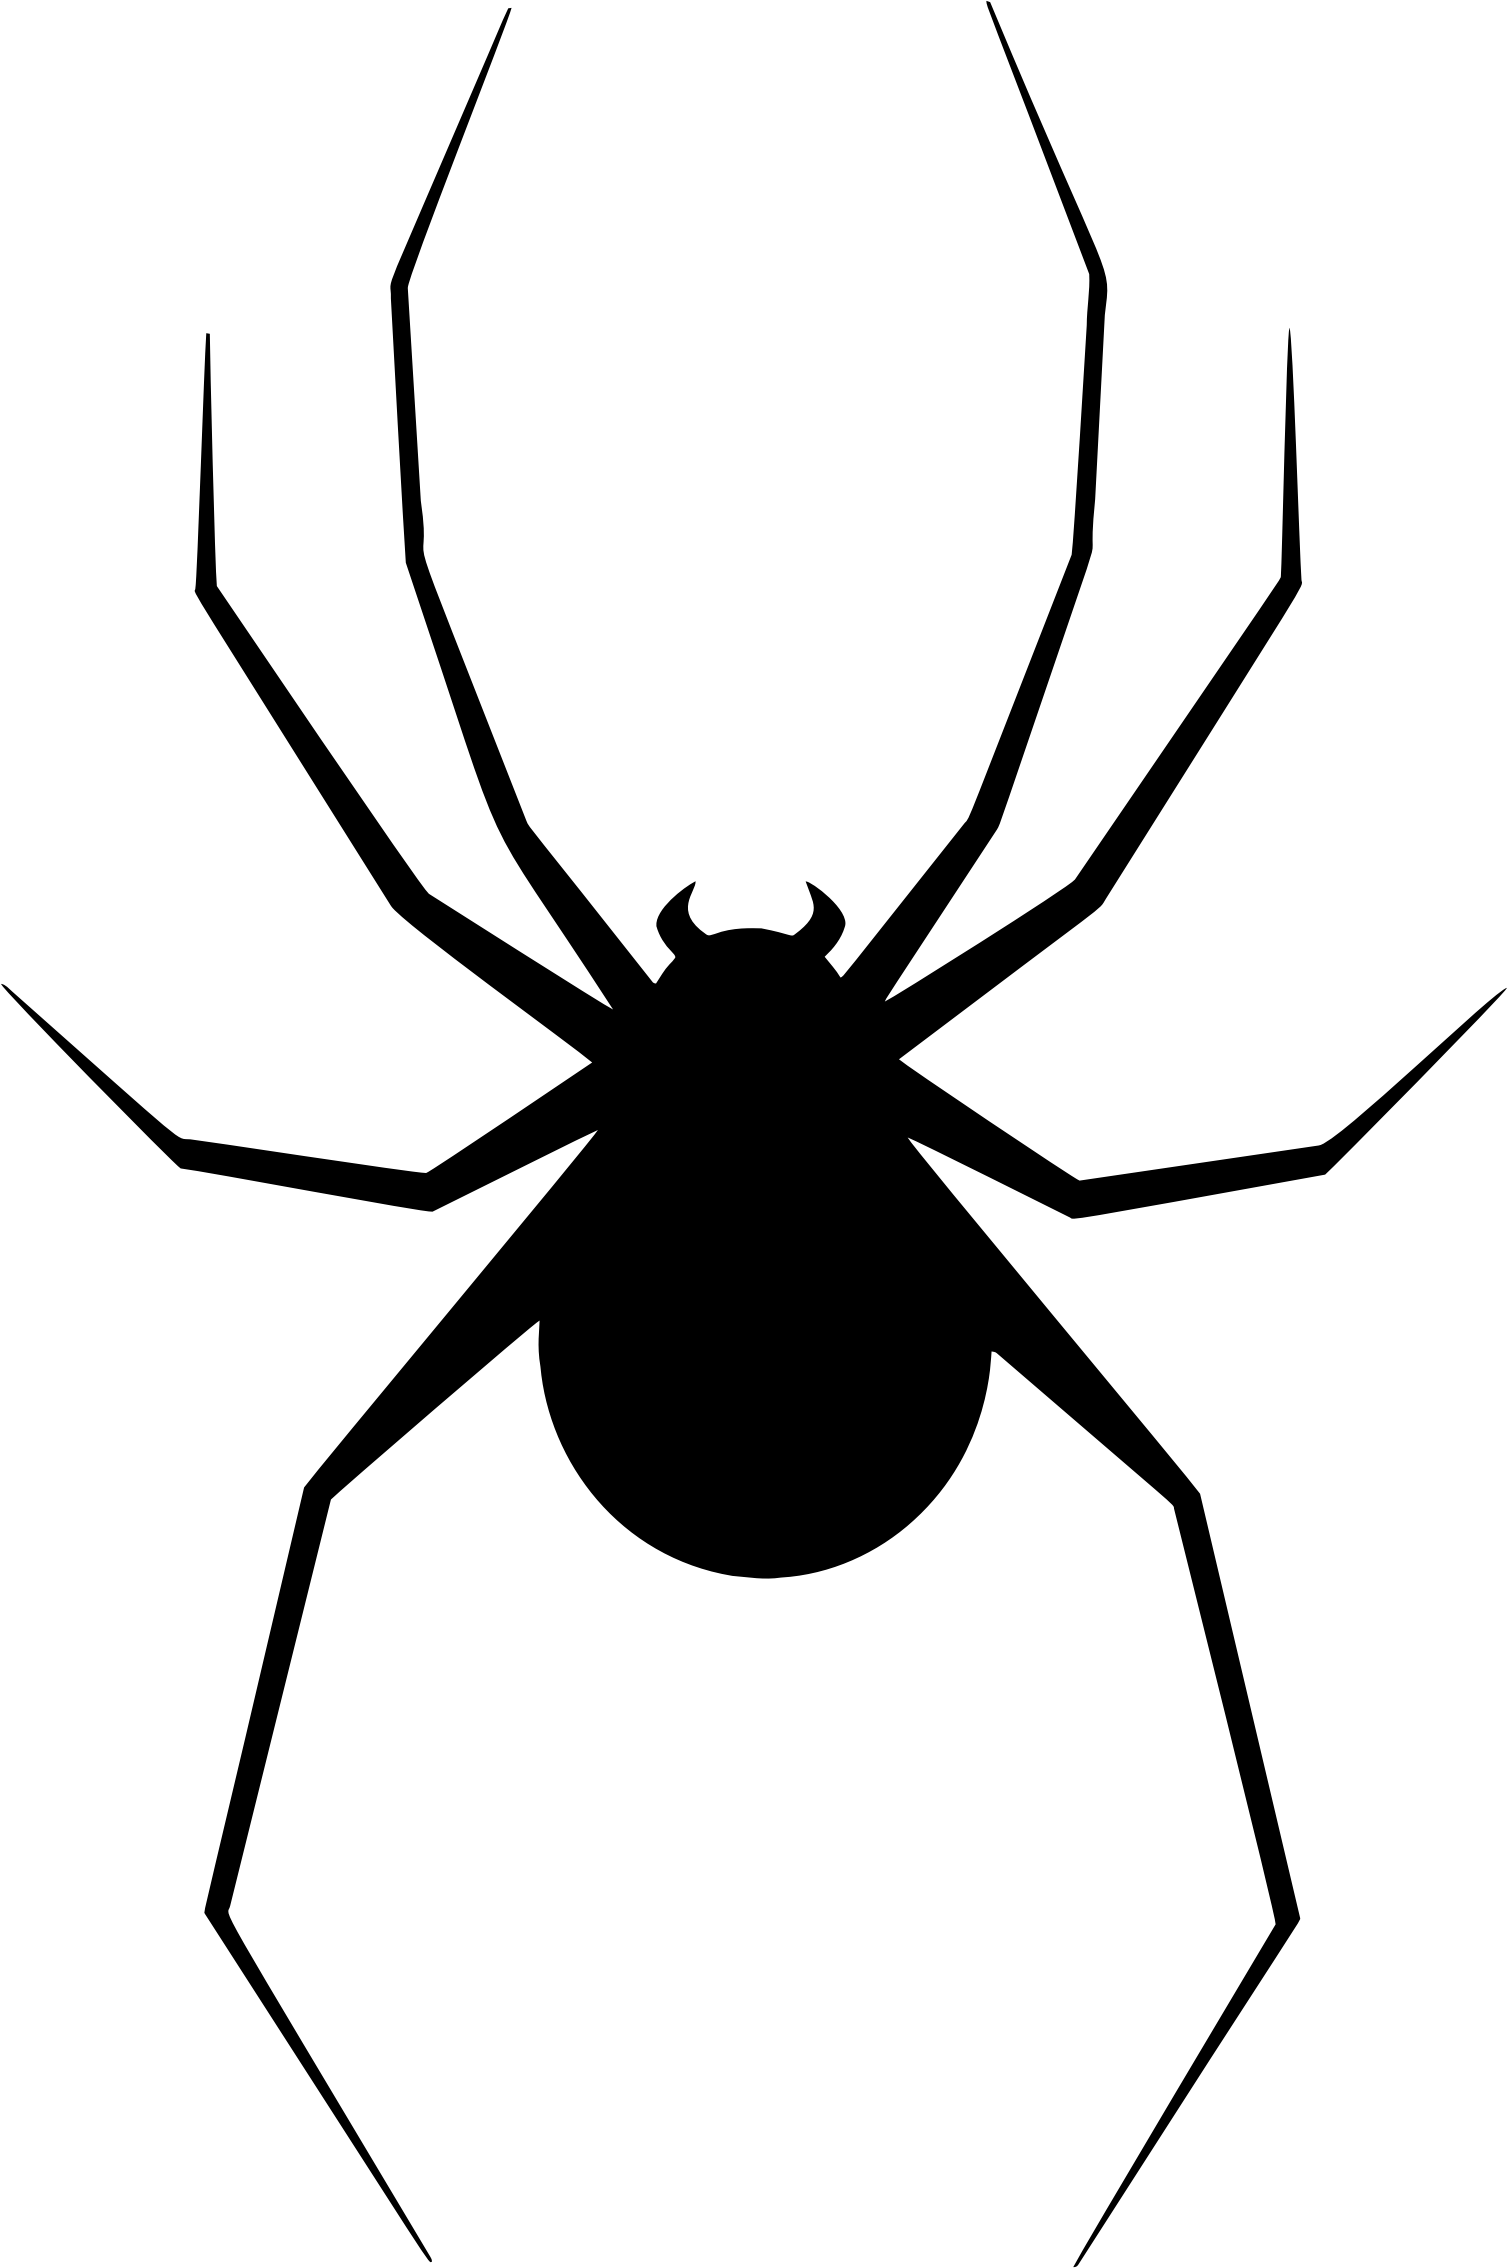 Spider Silhouette Clip Art At Getdrawings